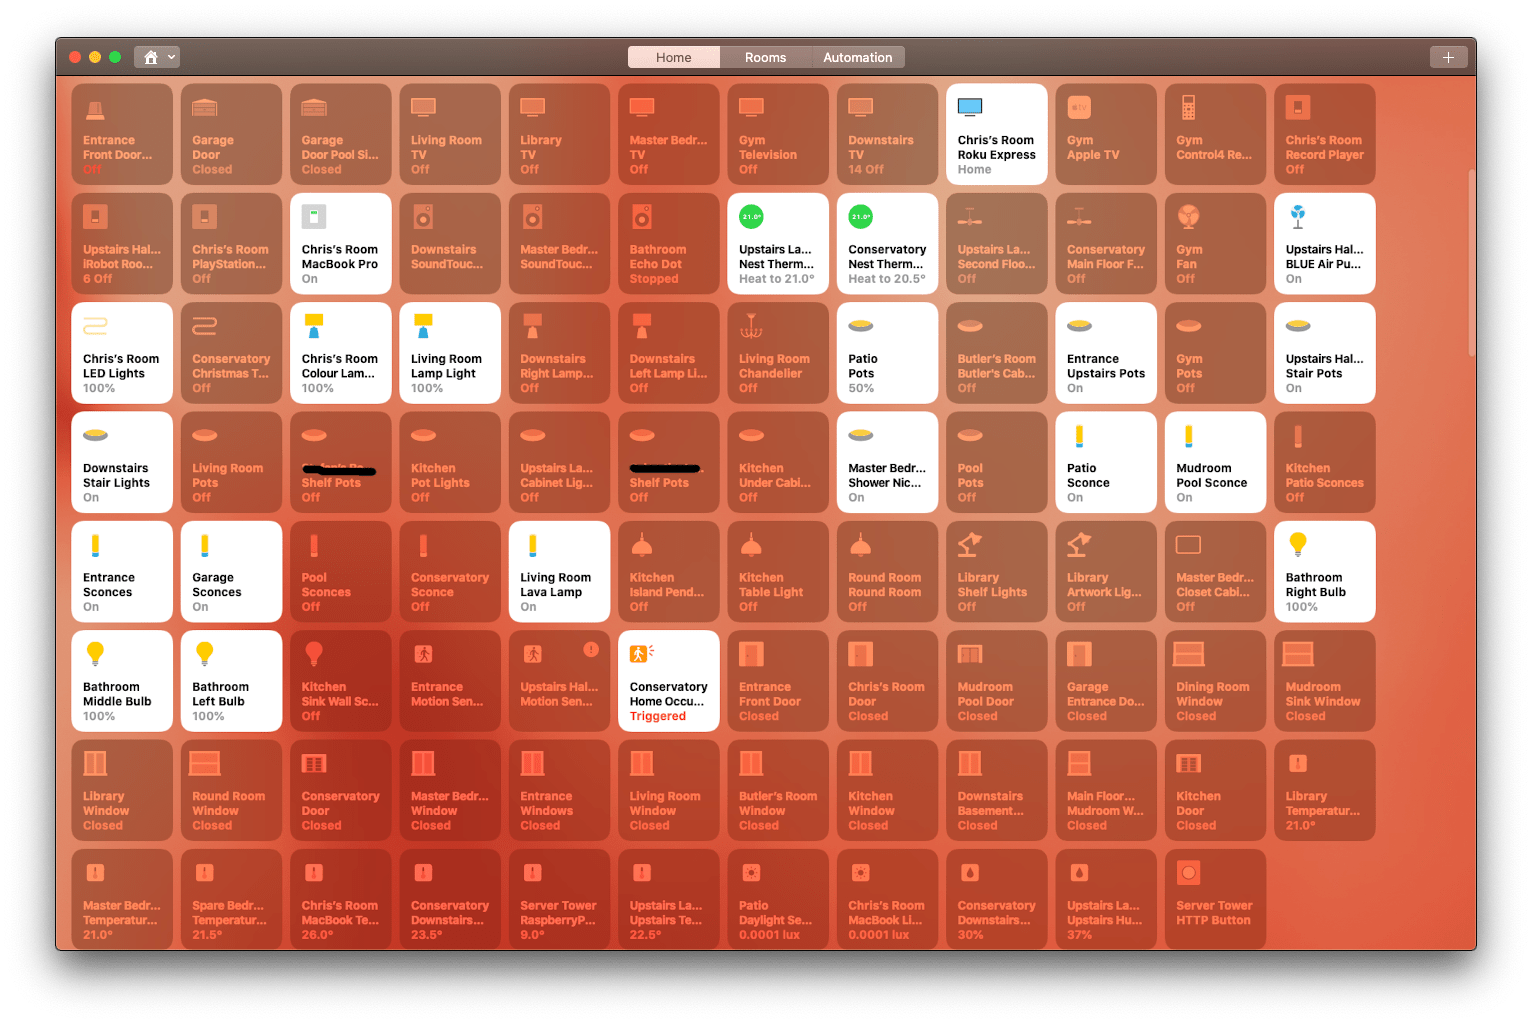 Thinking about setting up Homekit?  (Note: I put everything in favorites for aesthetic purposes)